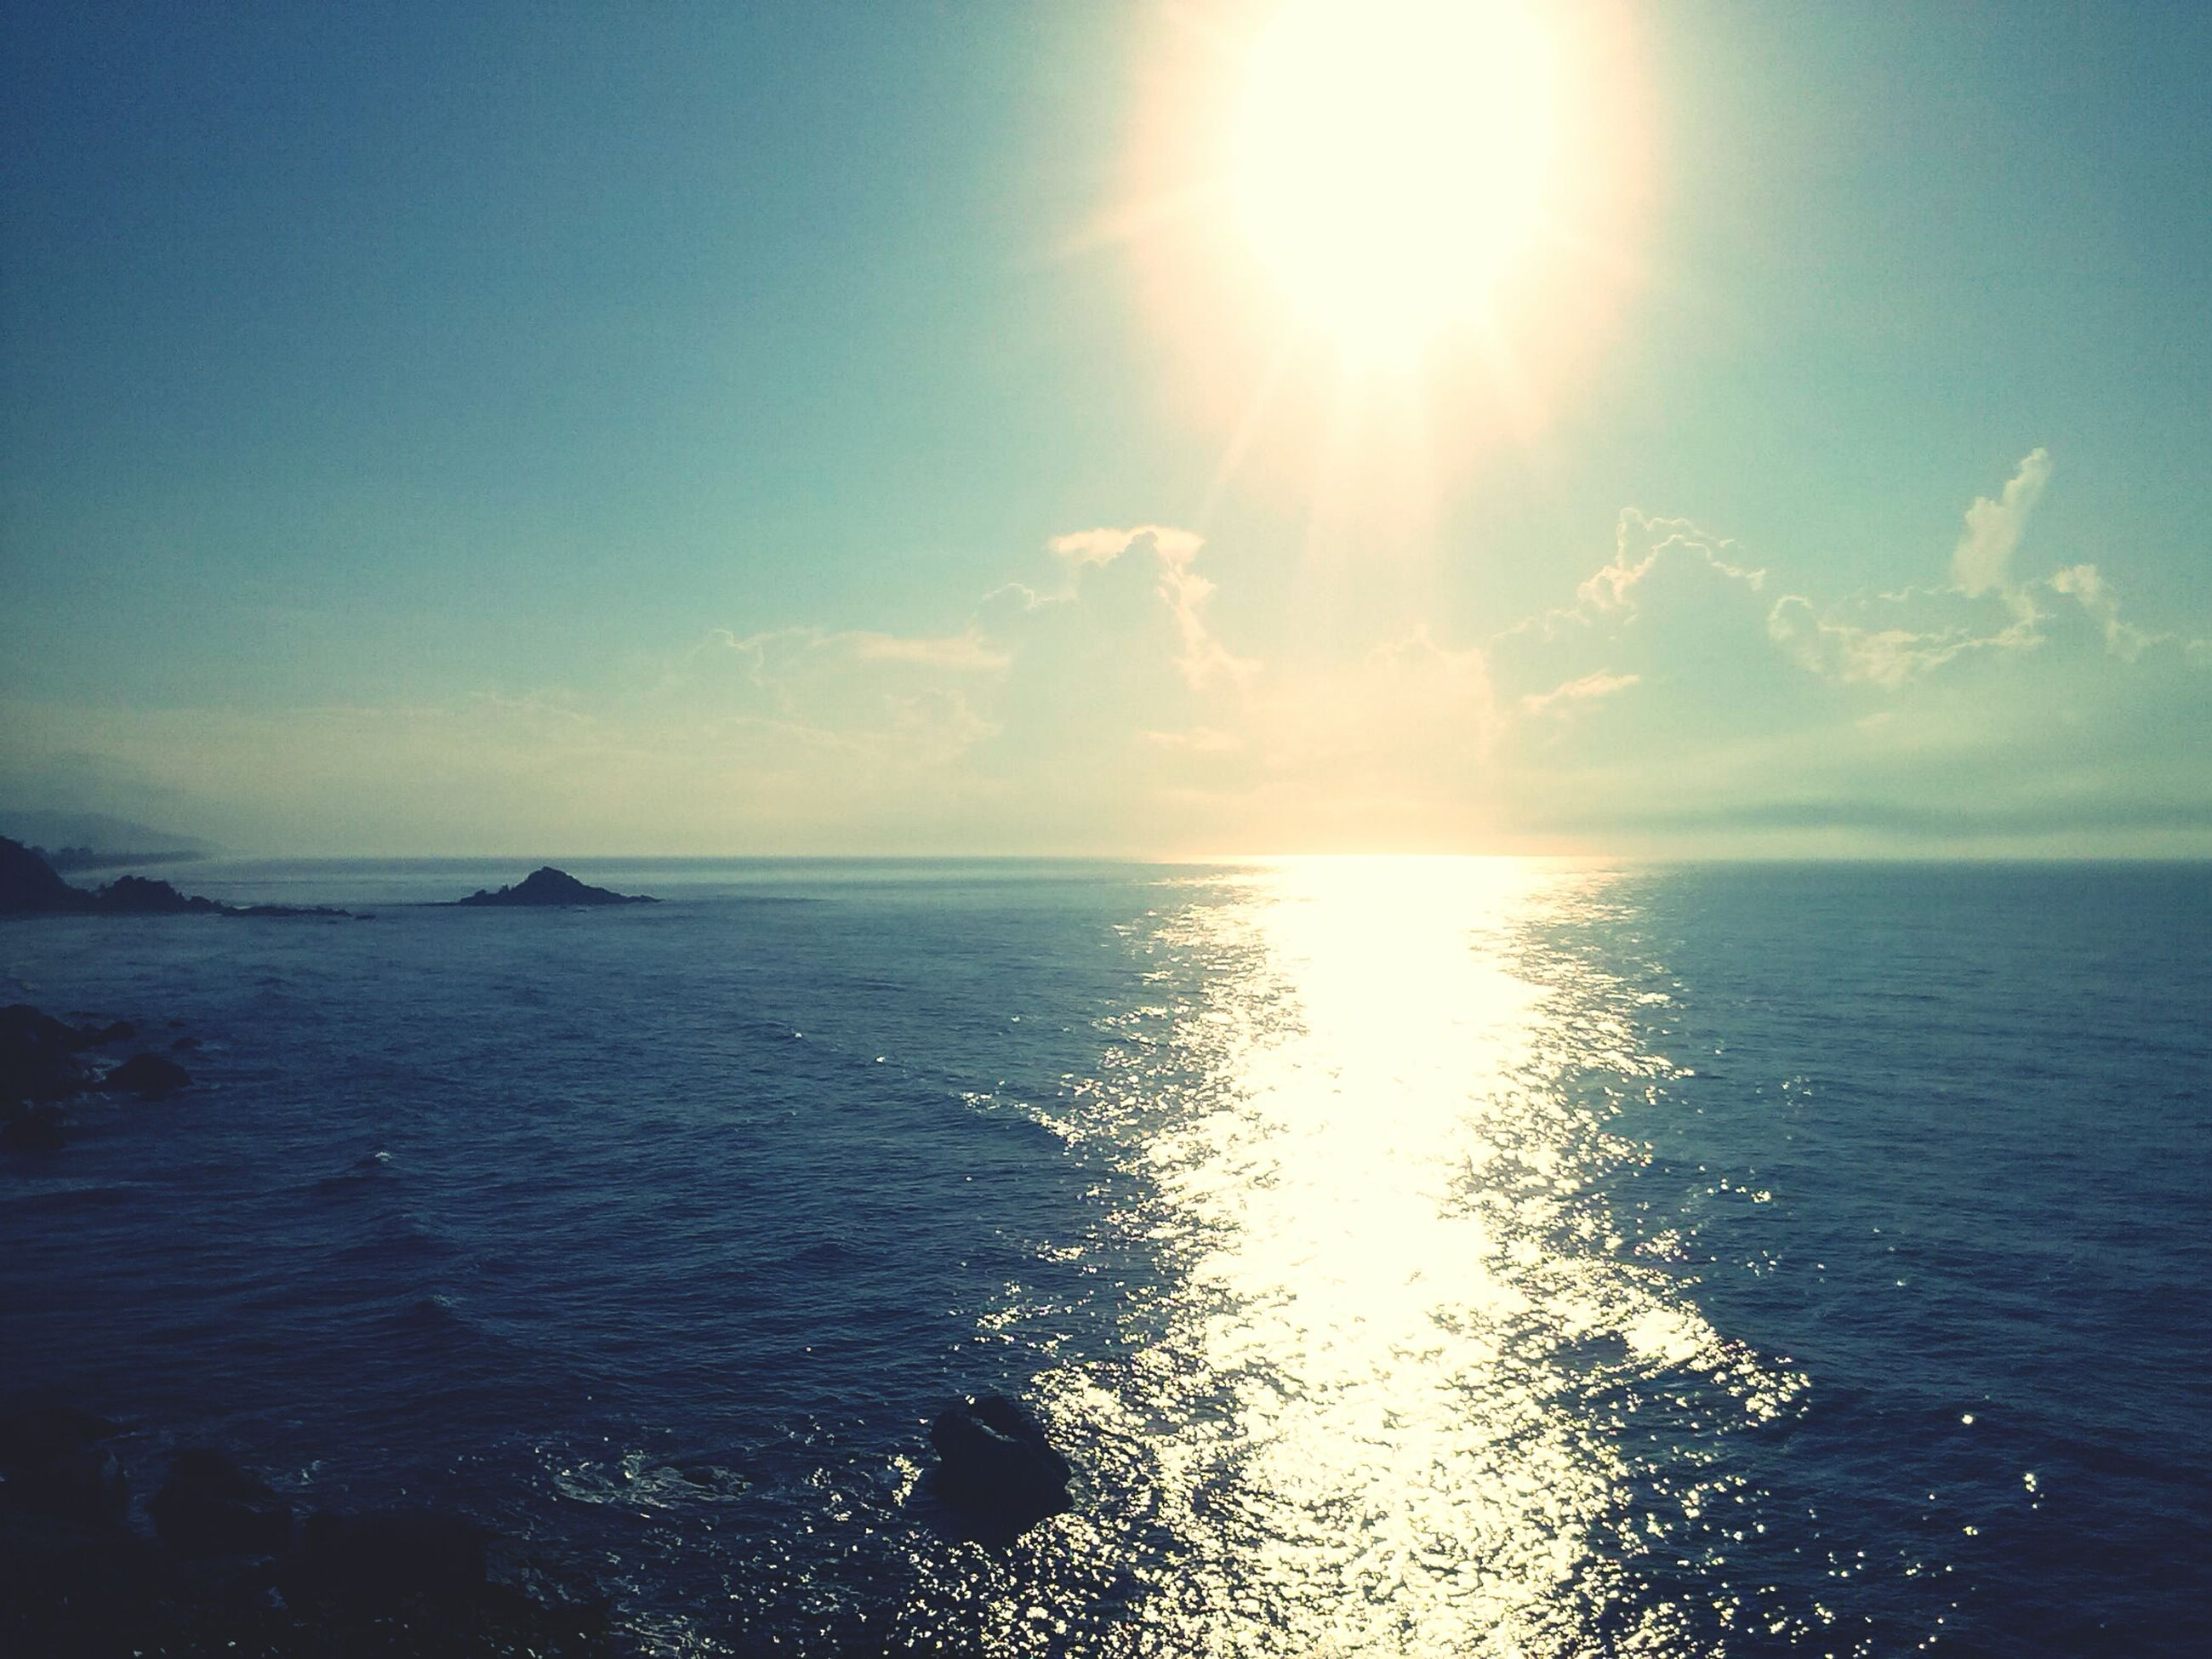 sea, horizon over water, water, tranquil scene, scenics, sun, sky, tranquility, beauty in nature, reflection, nature, sunlight, seascape, idyllic, waterfront, sunbeam, rippled, blue, cloud - sky, cloud